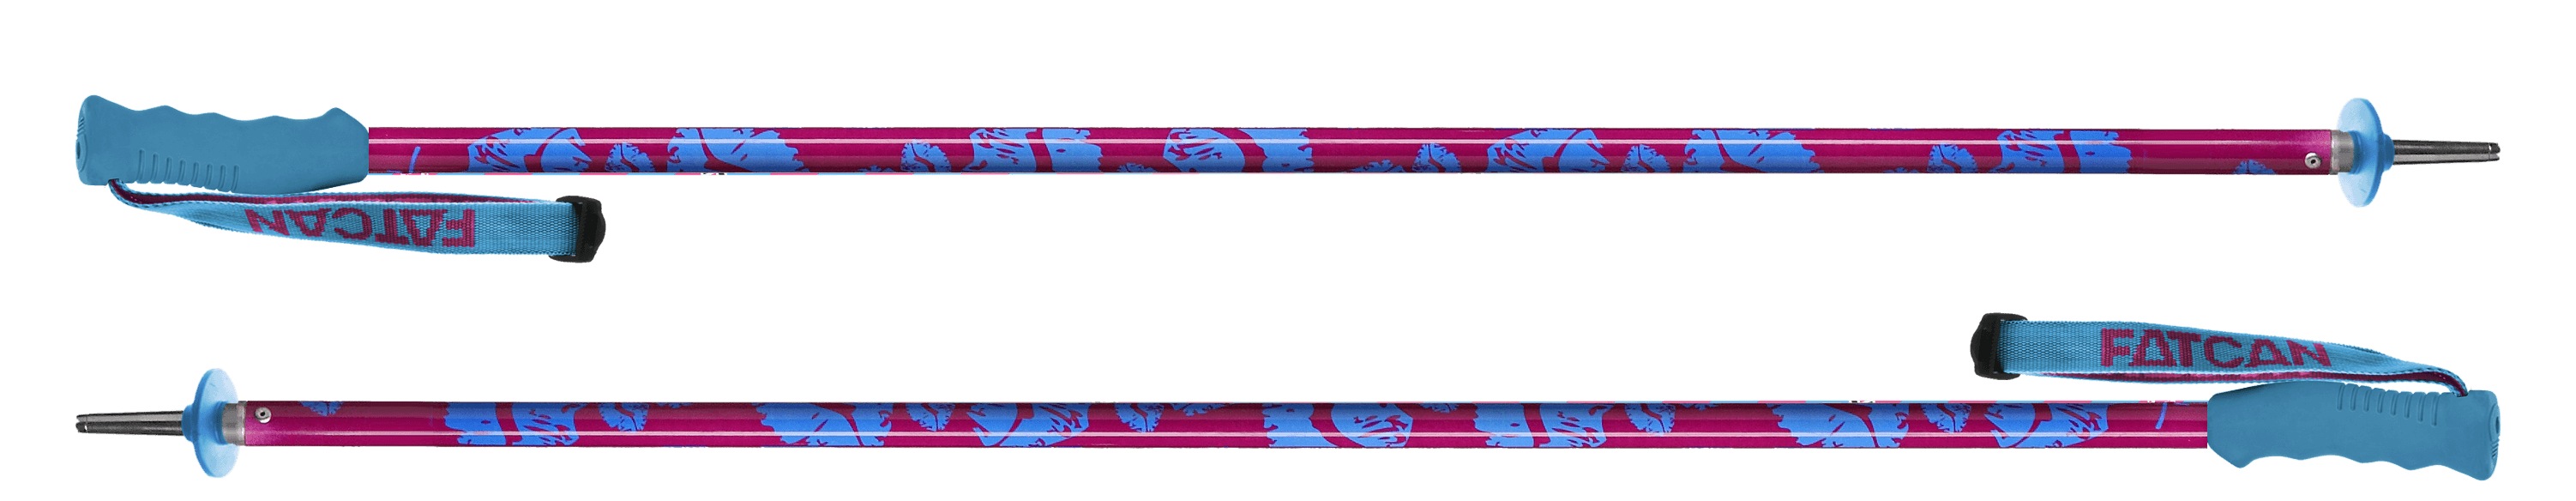 Kiss Blue - Fatcan SKI POLES Made In Italy